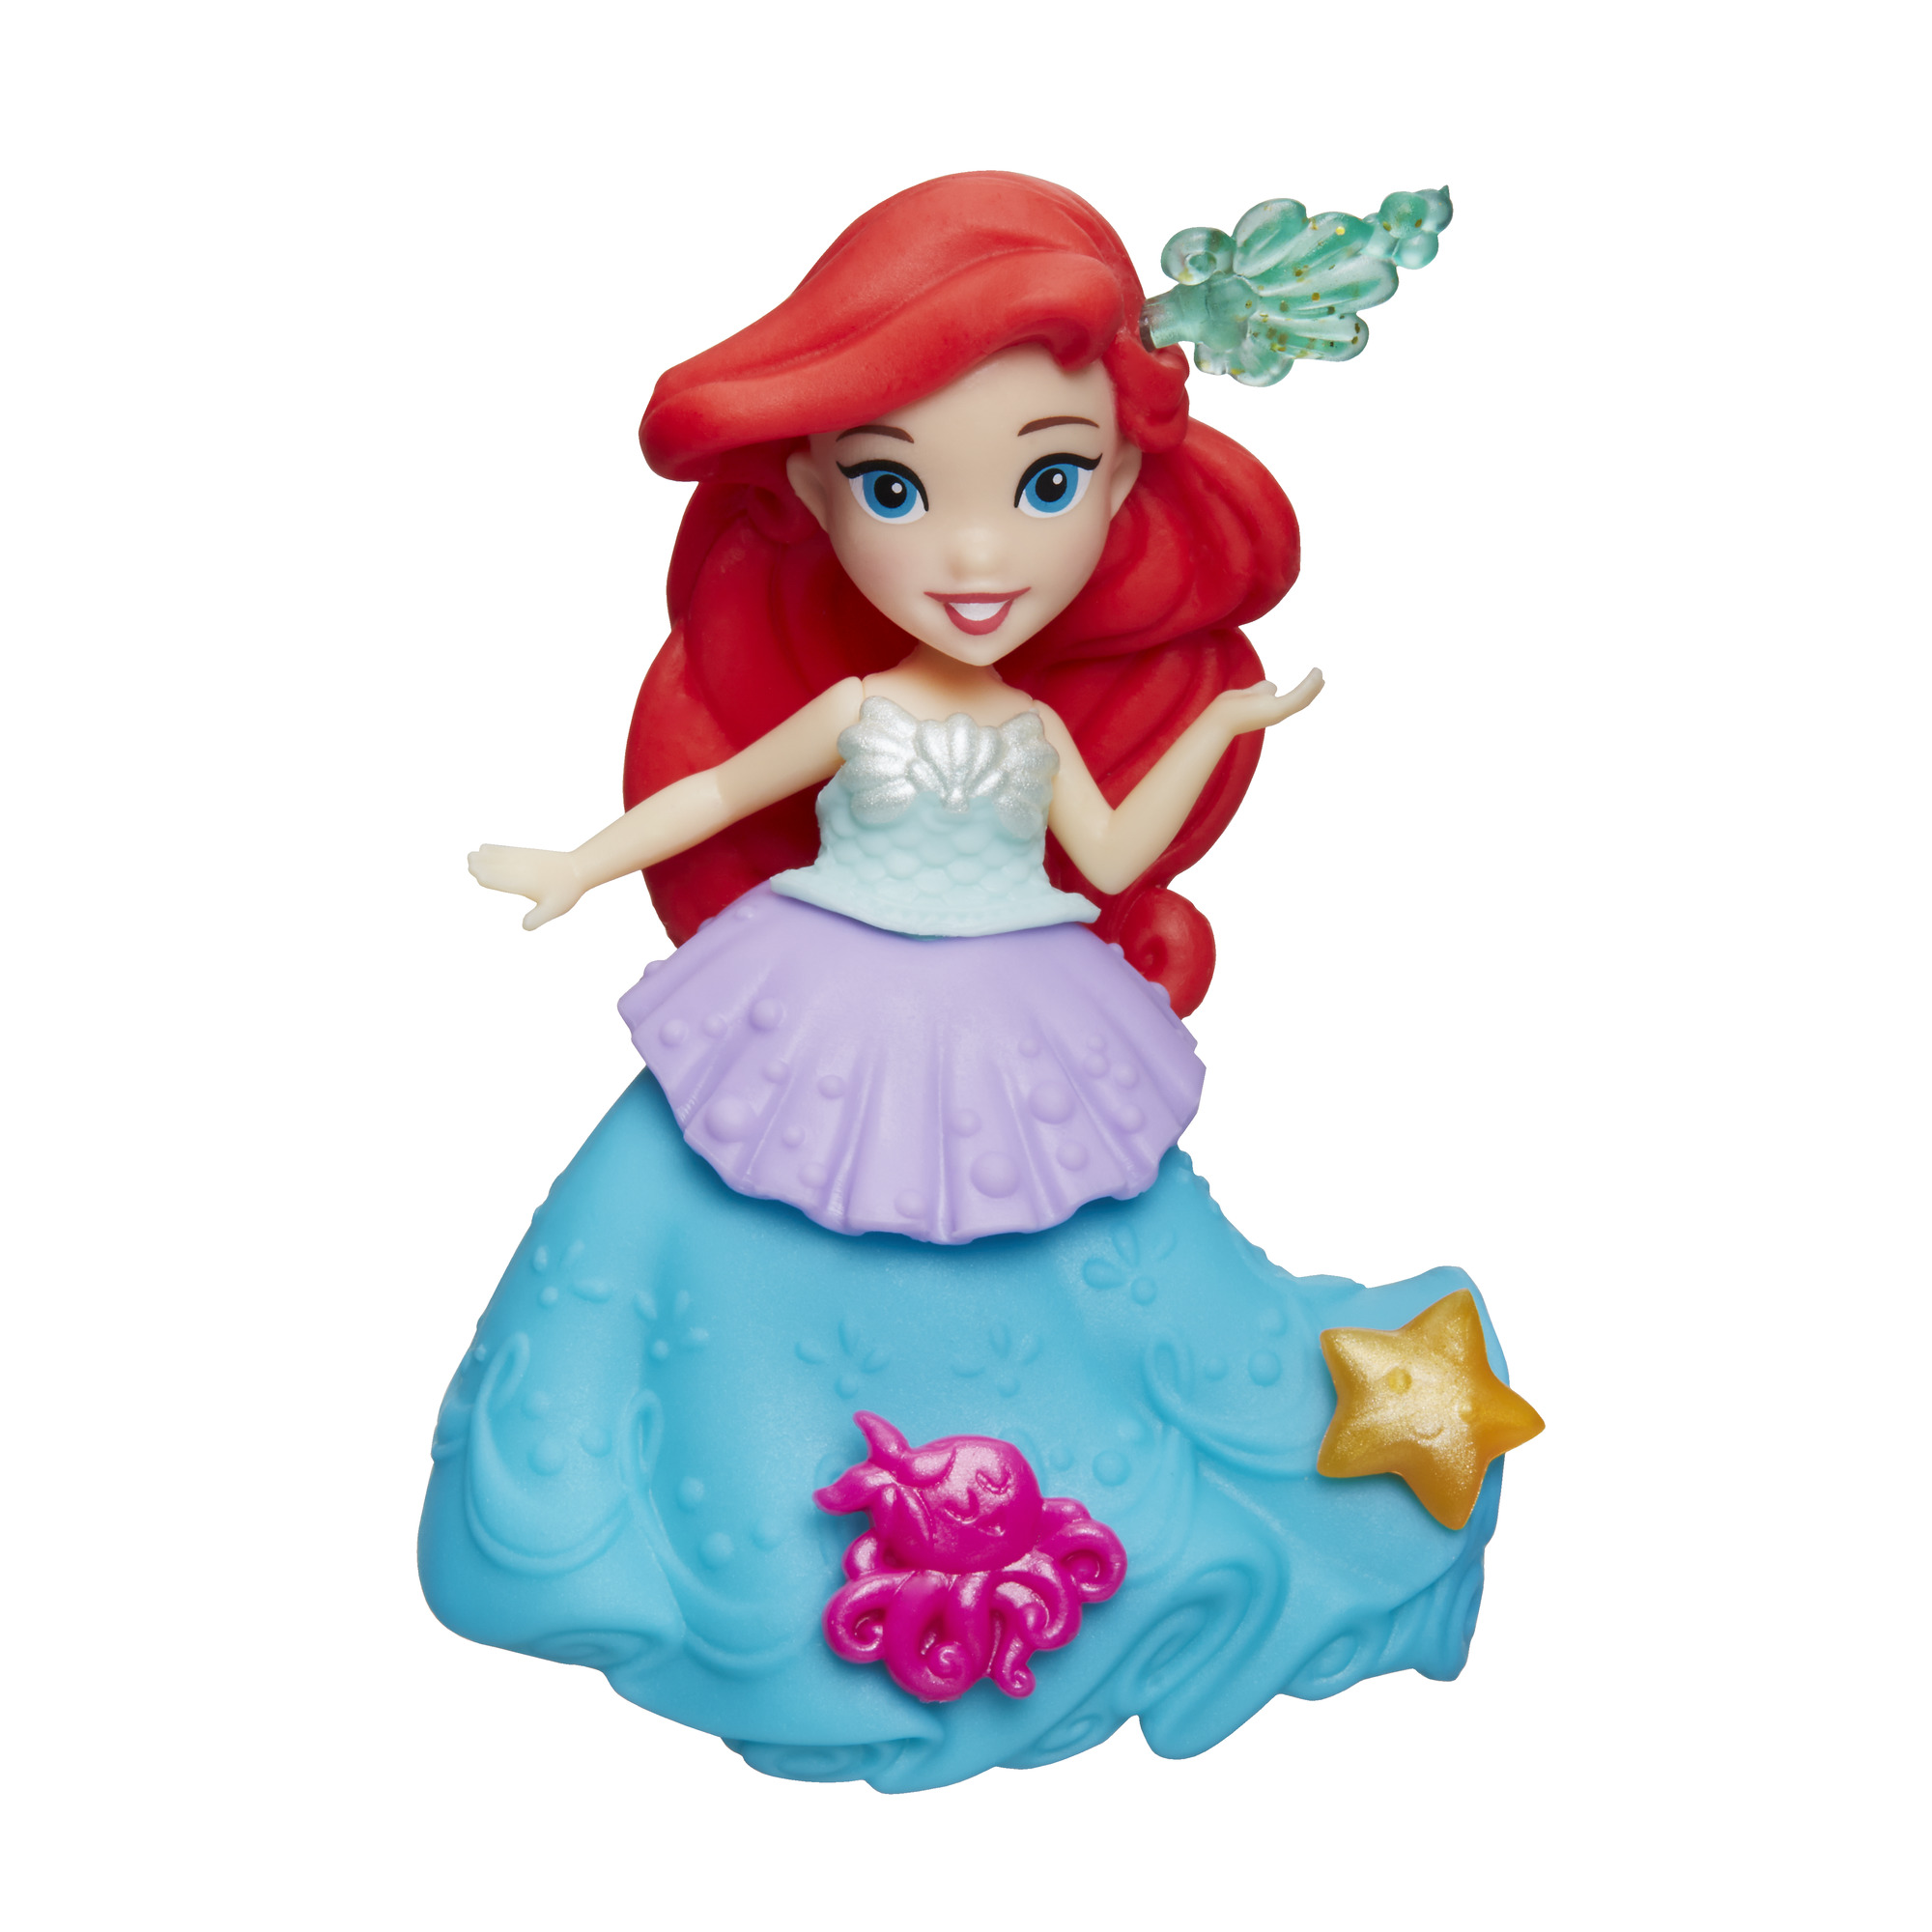 DPR SMALL DOLL ARIEL